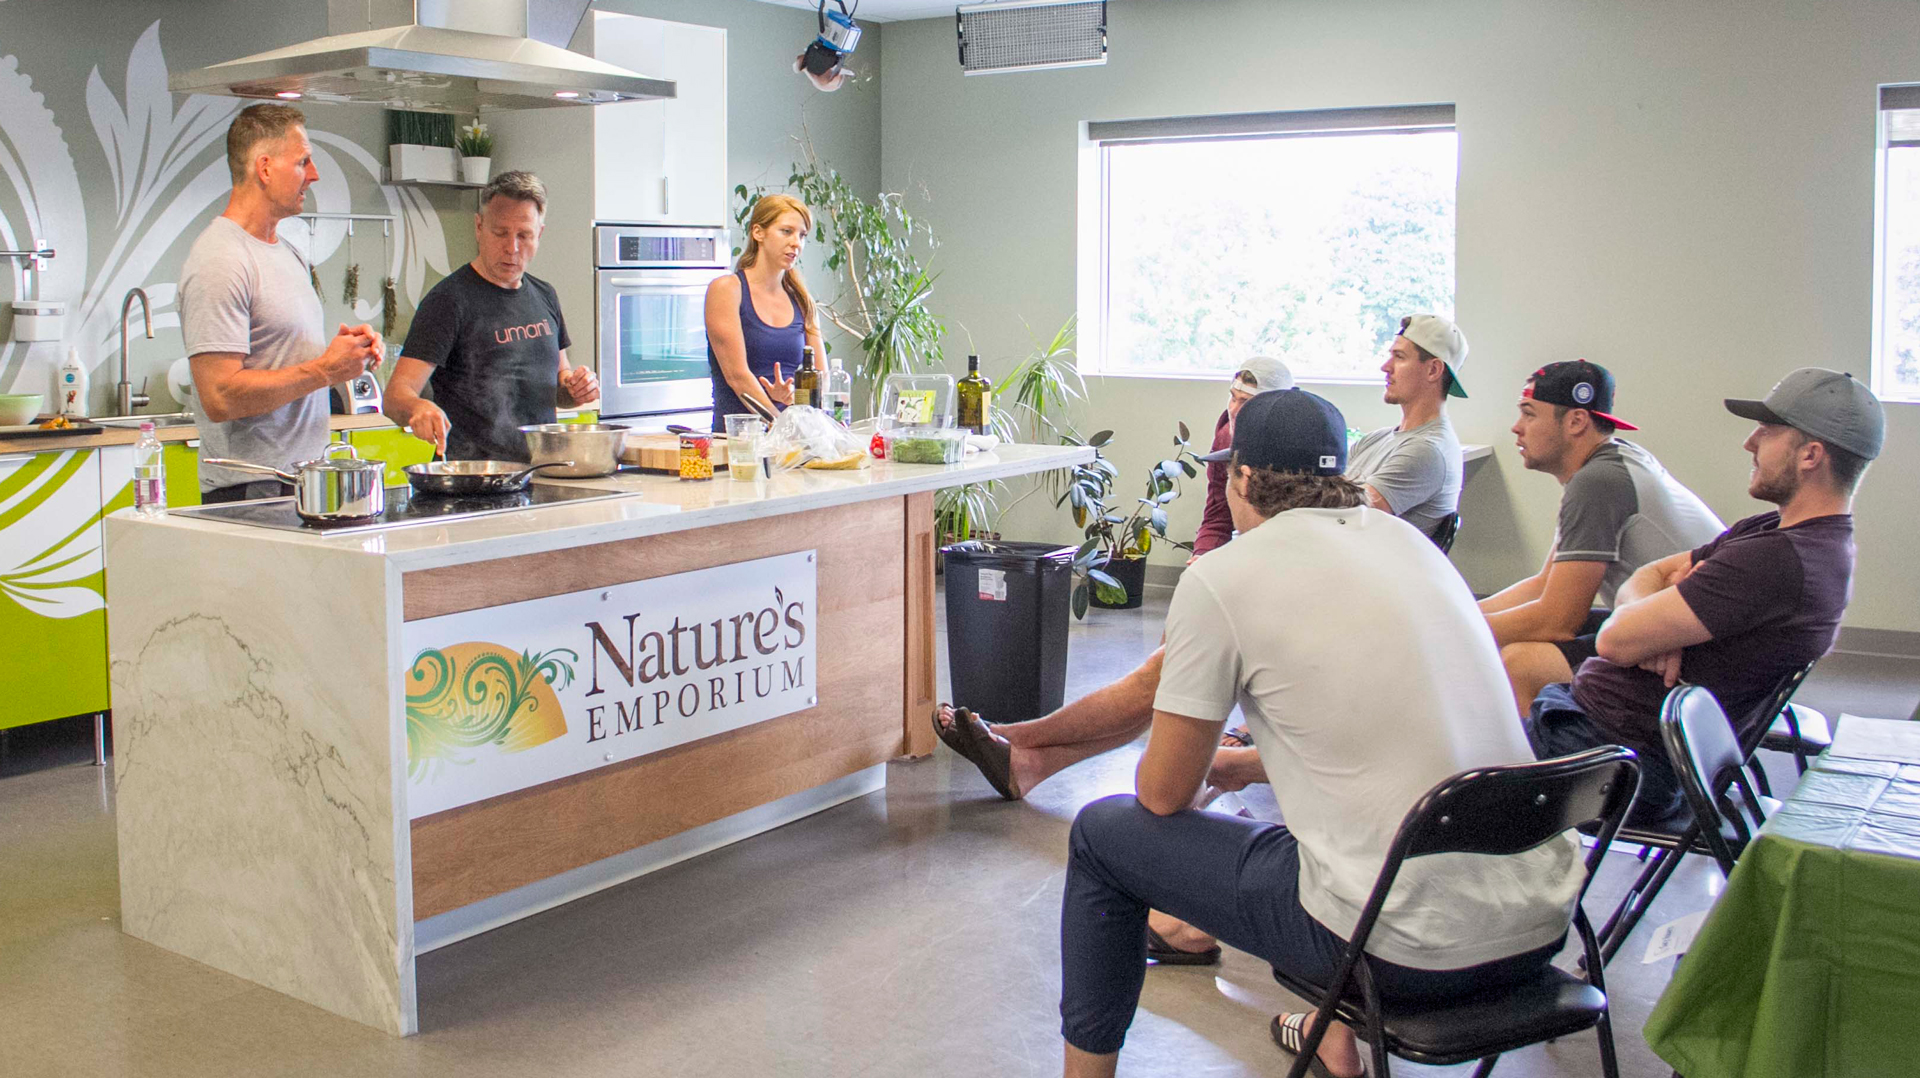 Andrew-with-Gary-and-Athletes---Nature's-Emporium.jpg